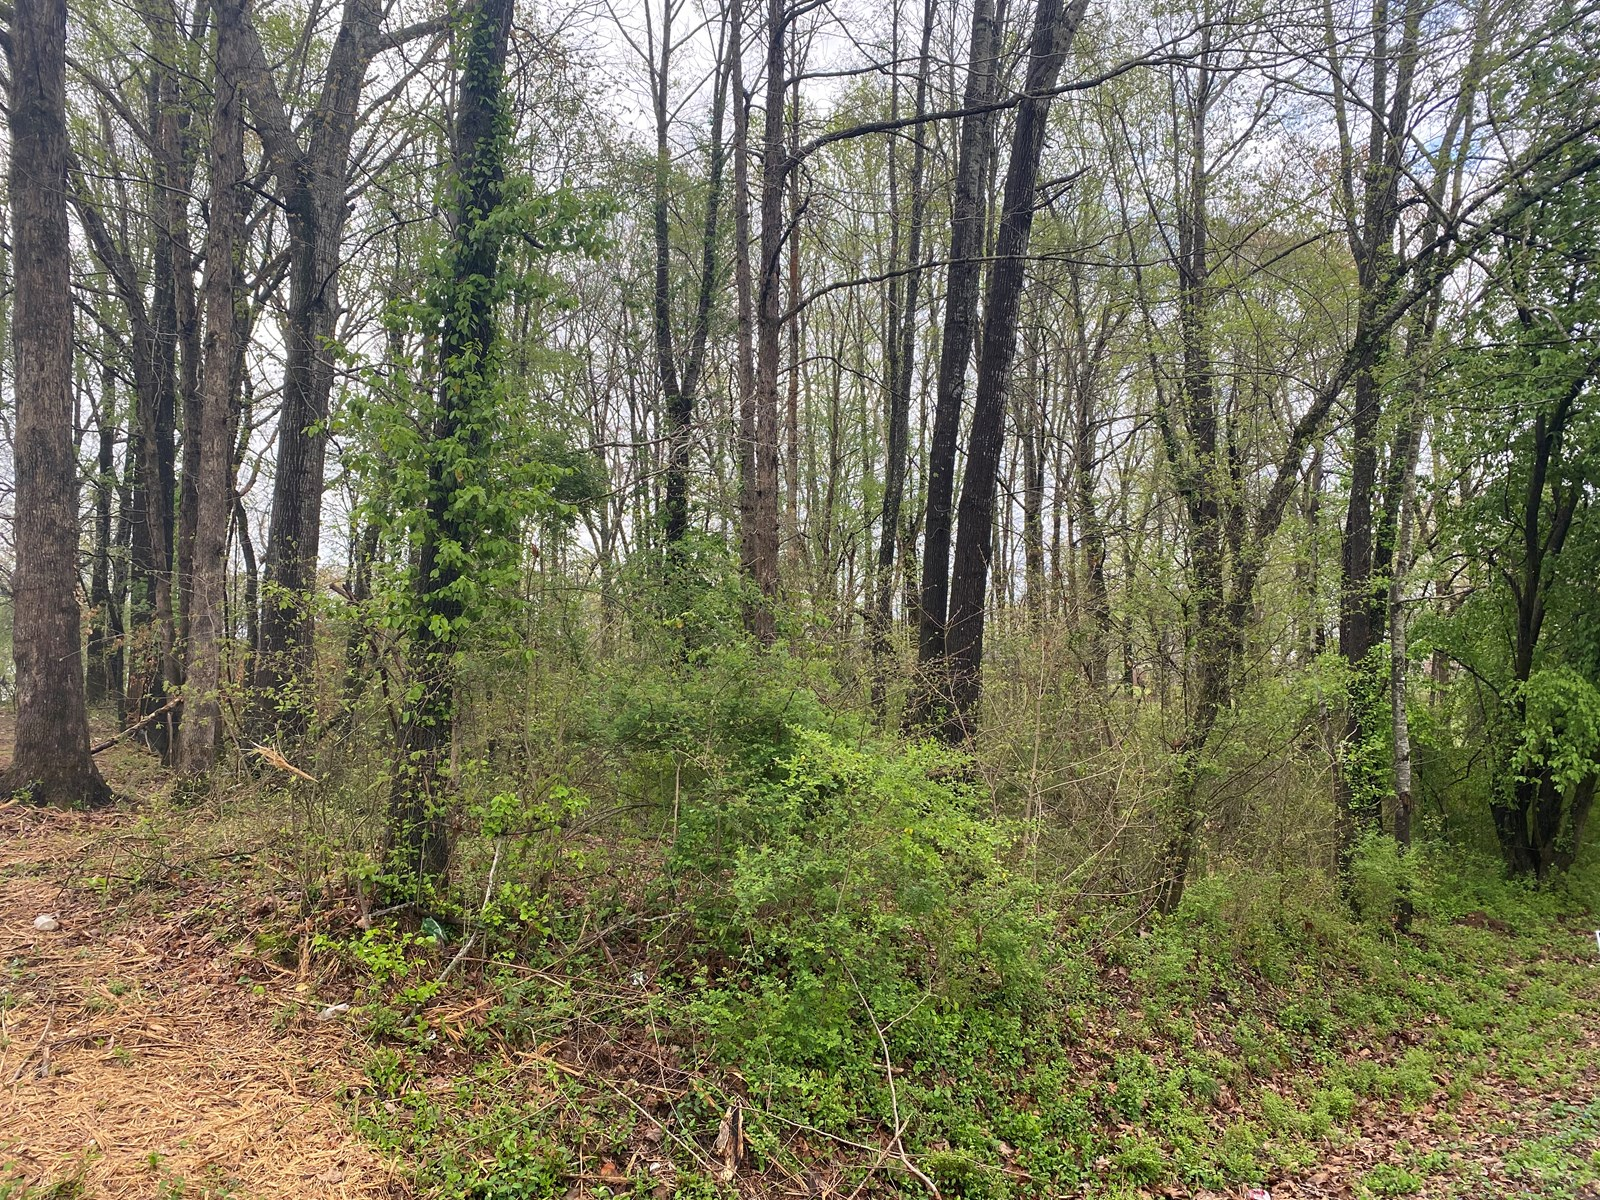 LOT FOR SALE IN LAWRENCEBURG TN WITH ALL PUBLIC UTILITIES